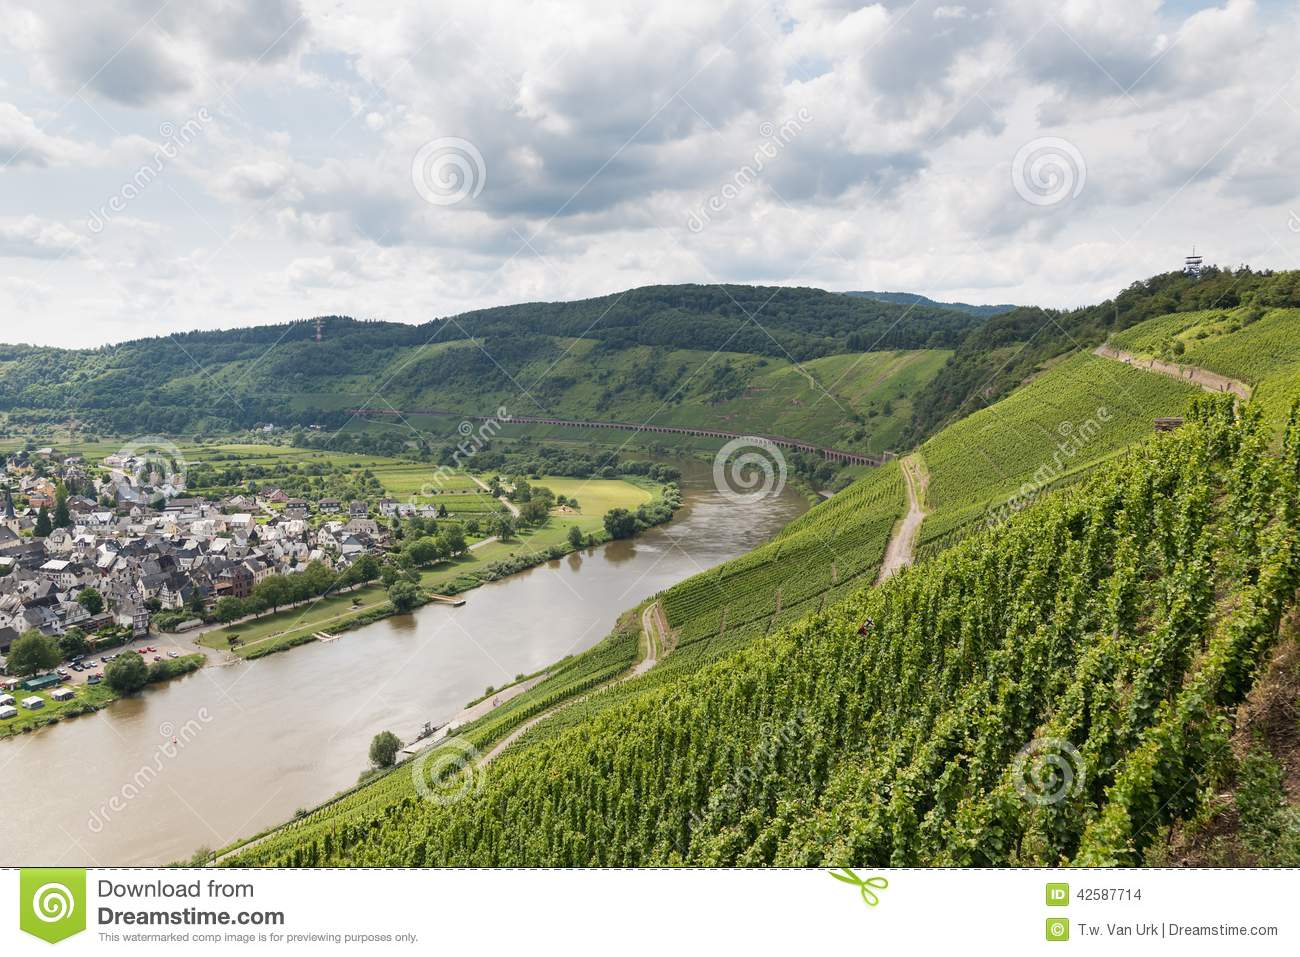 Vineyards in Germany along river Moselle near Punderich